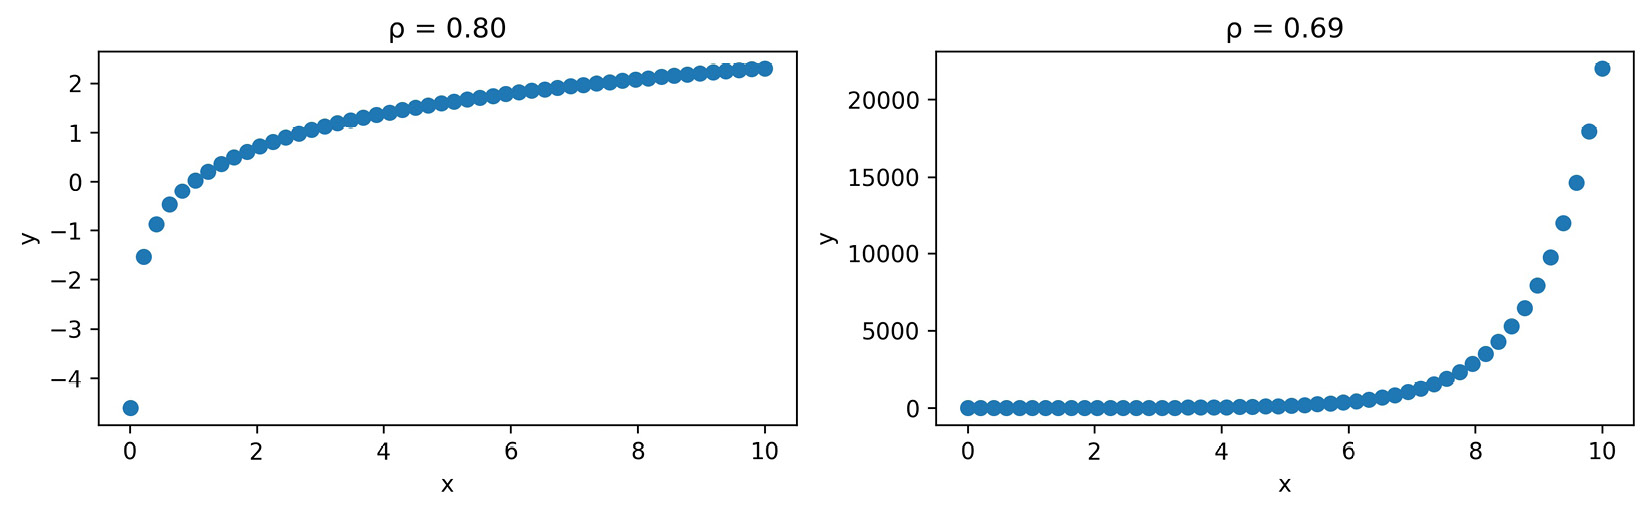 Figure 1.13 – The correlation coefficient can be misleading